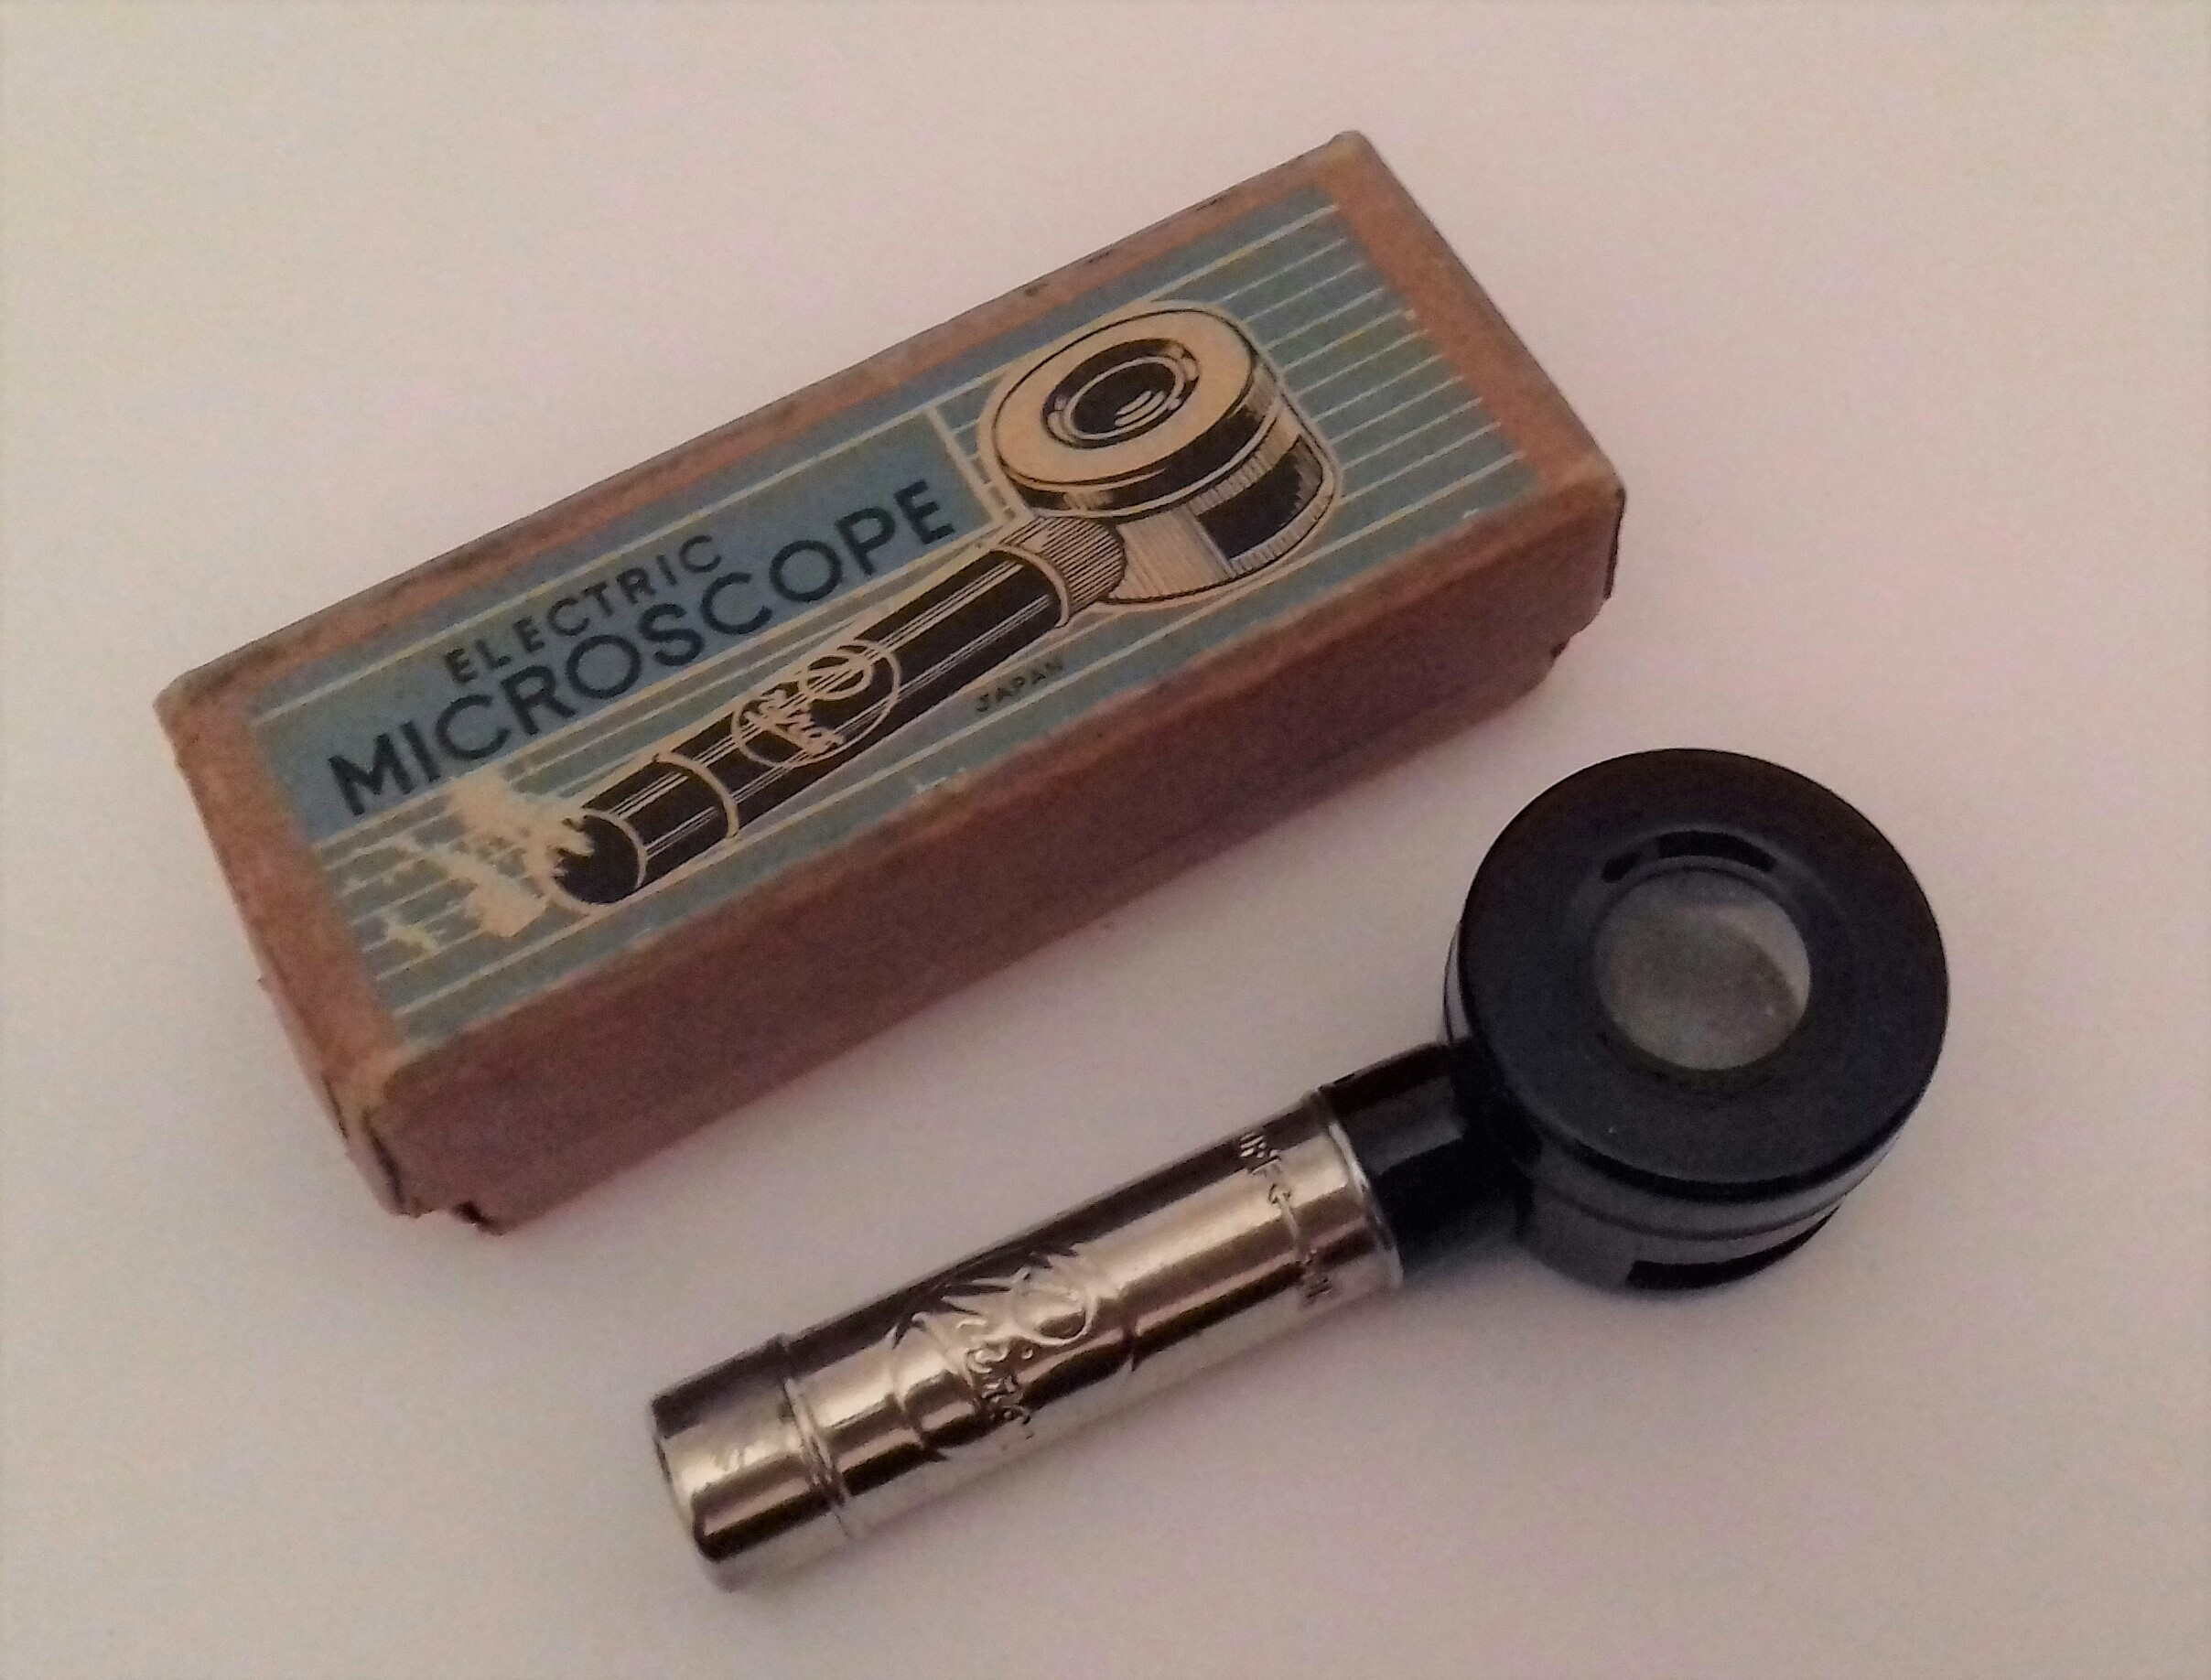 A toy microscope that is a small round lens on a handle